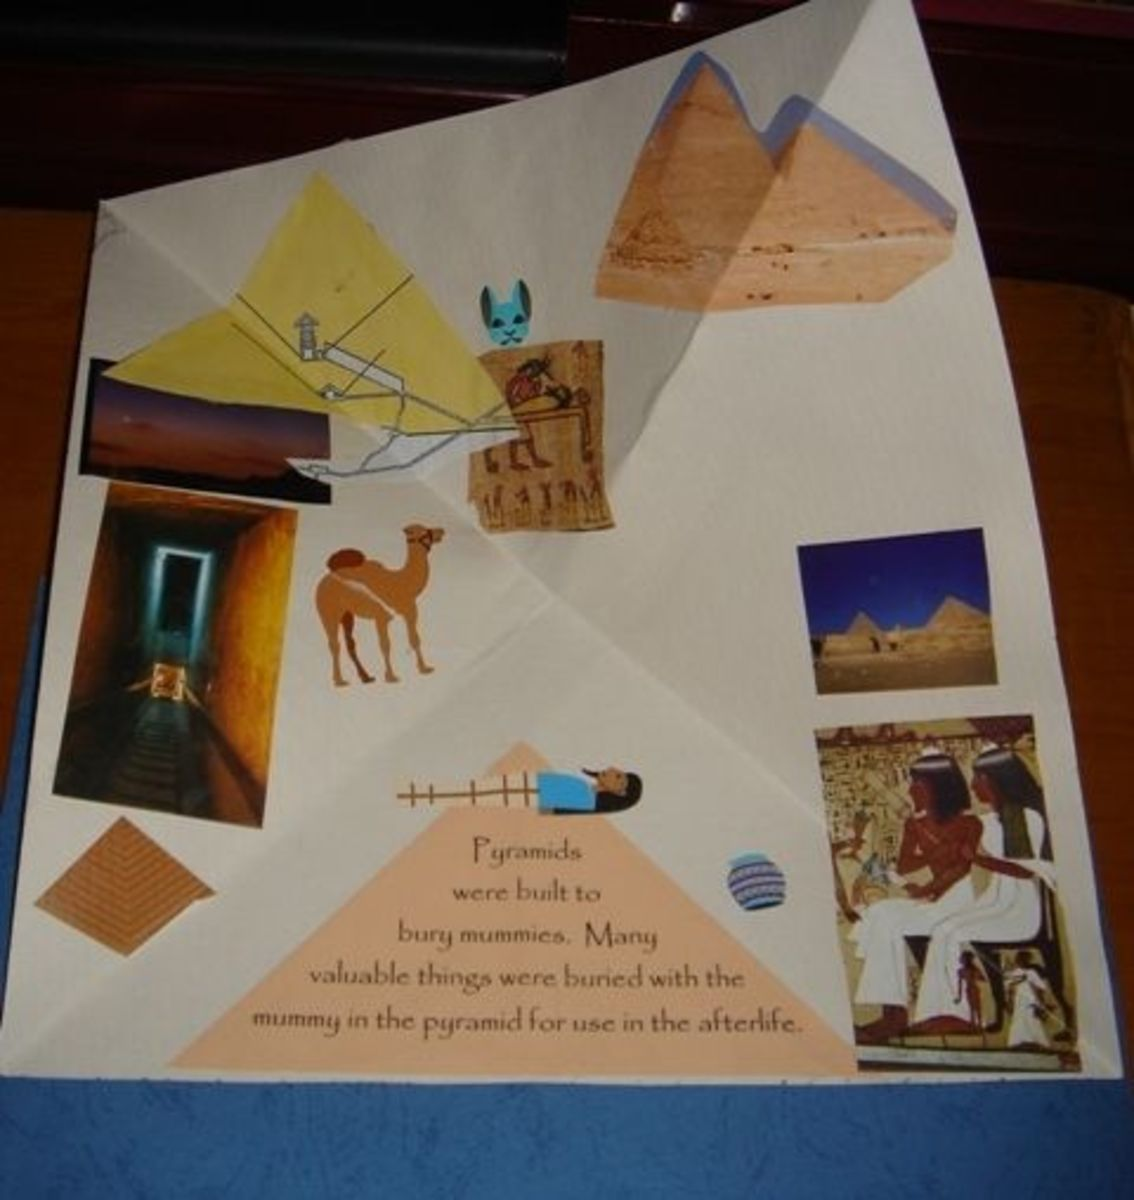 Pyramid mini-booklet opened all